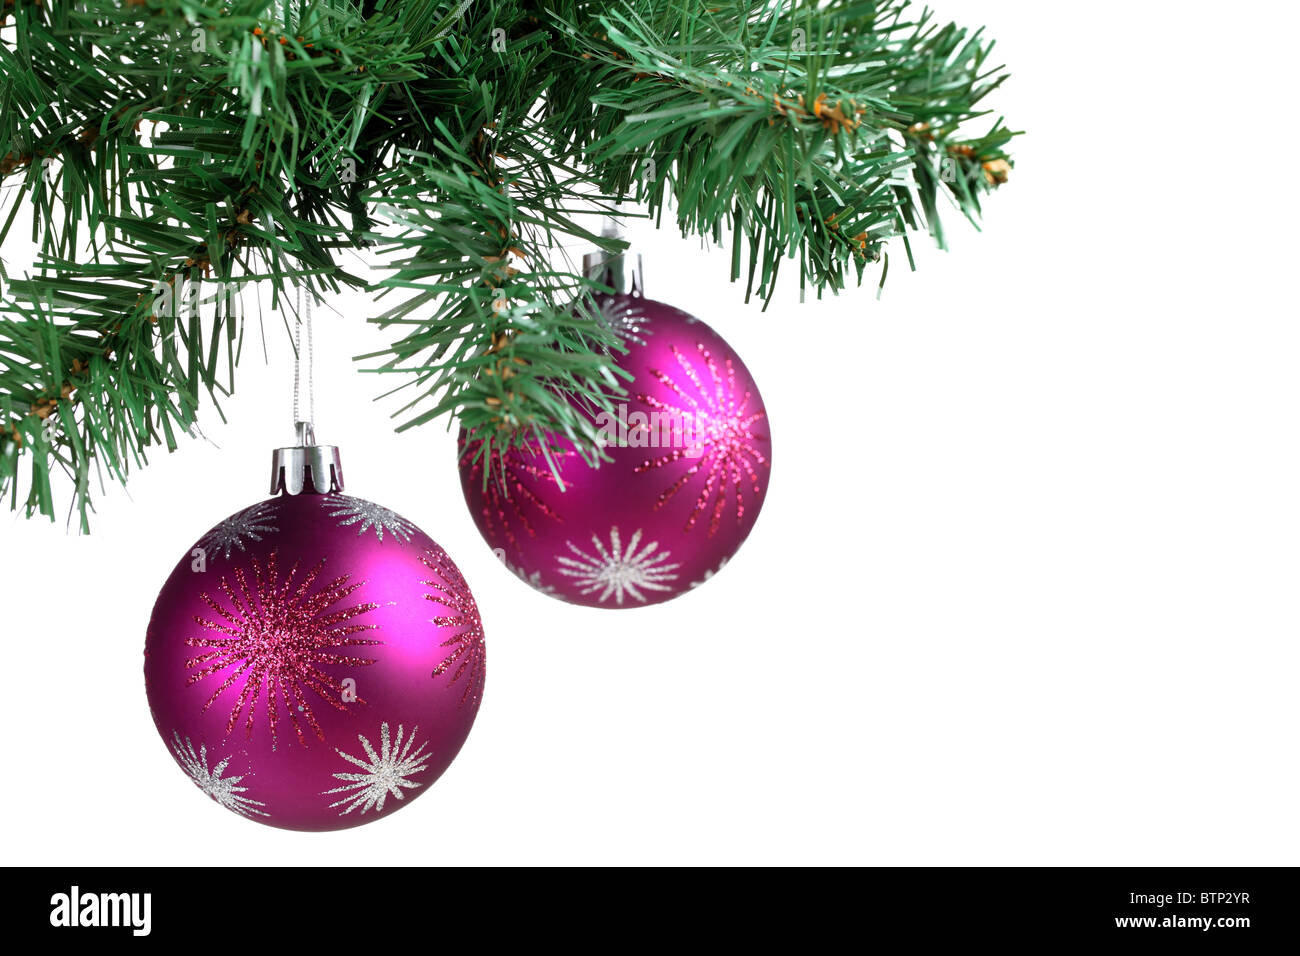 Christmas ball and green spruce branch. - Stock Image